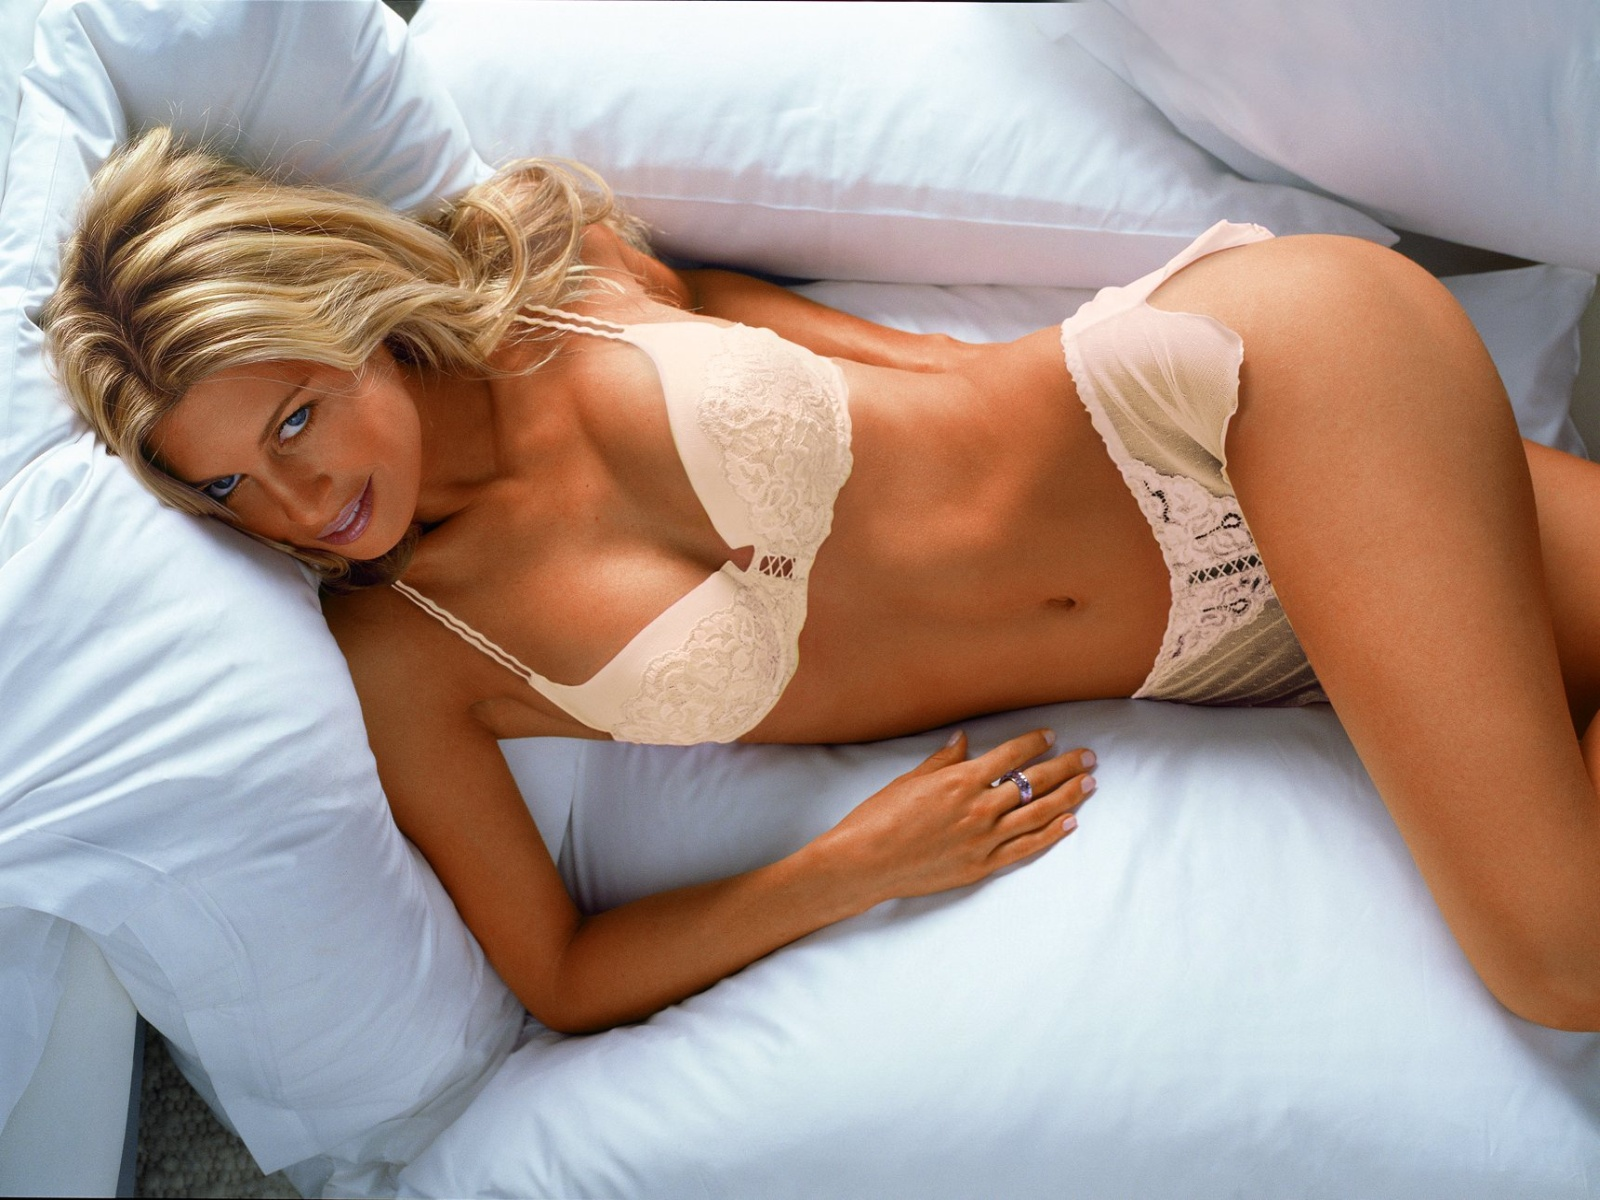 hot girl on bed - photo #4